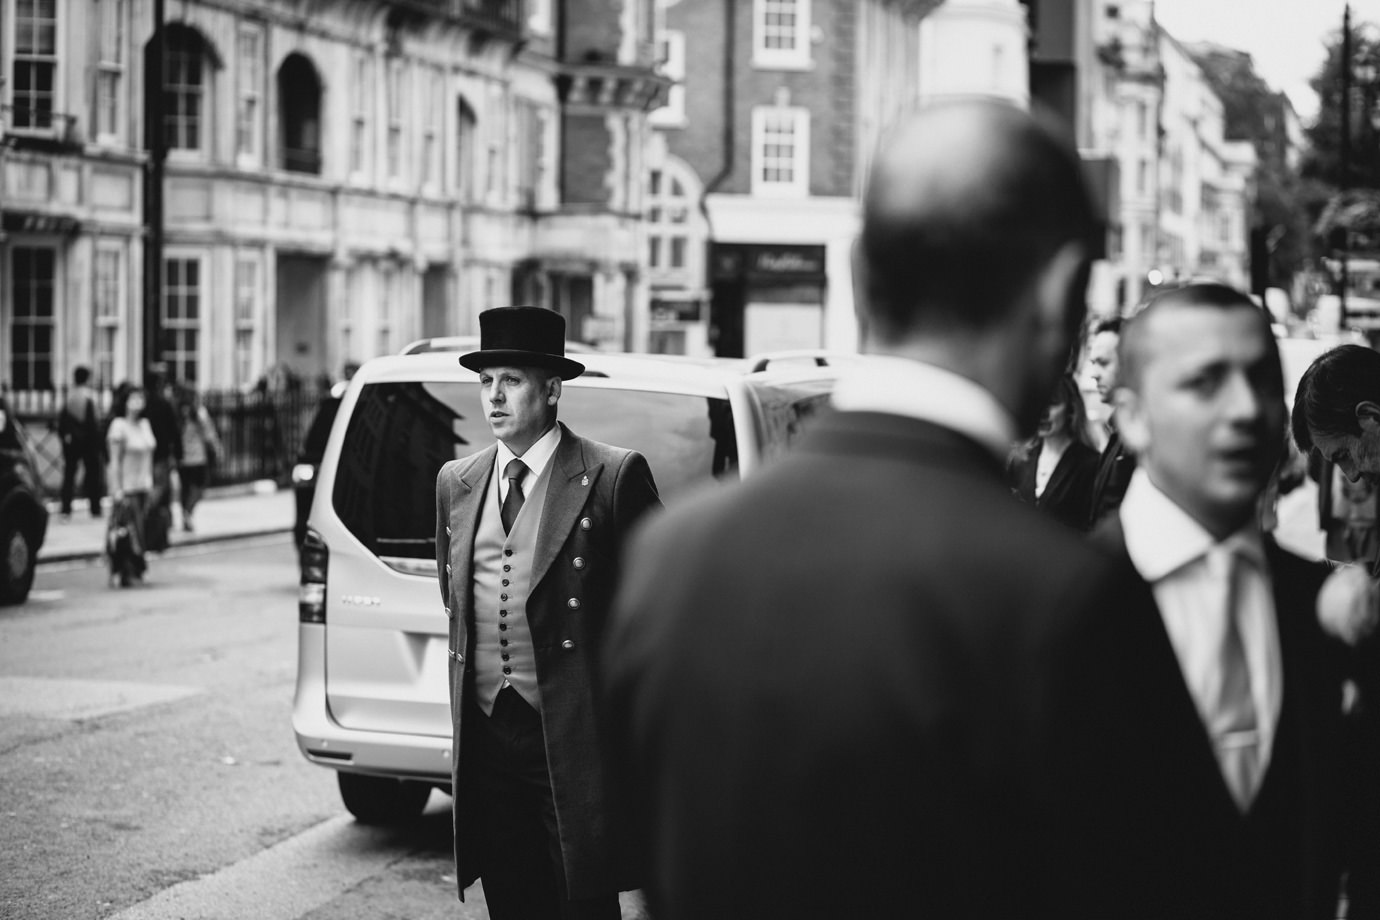 Waiting outside Claridges London, documentary wedding photography